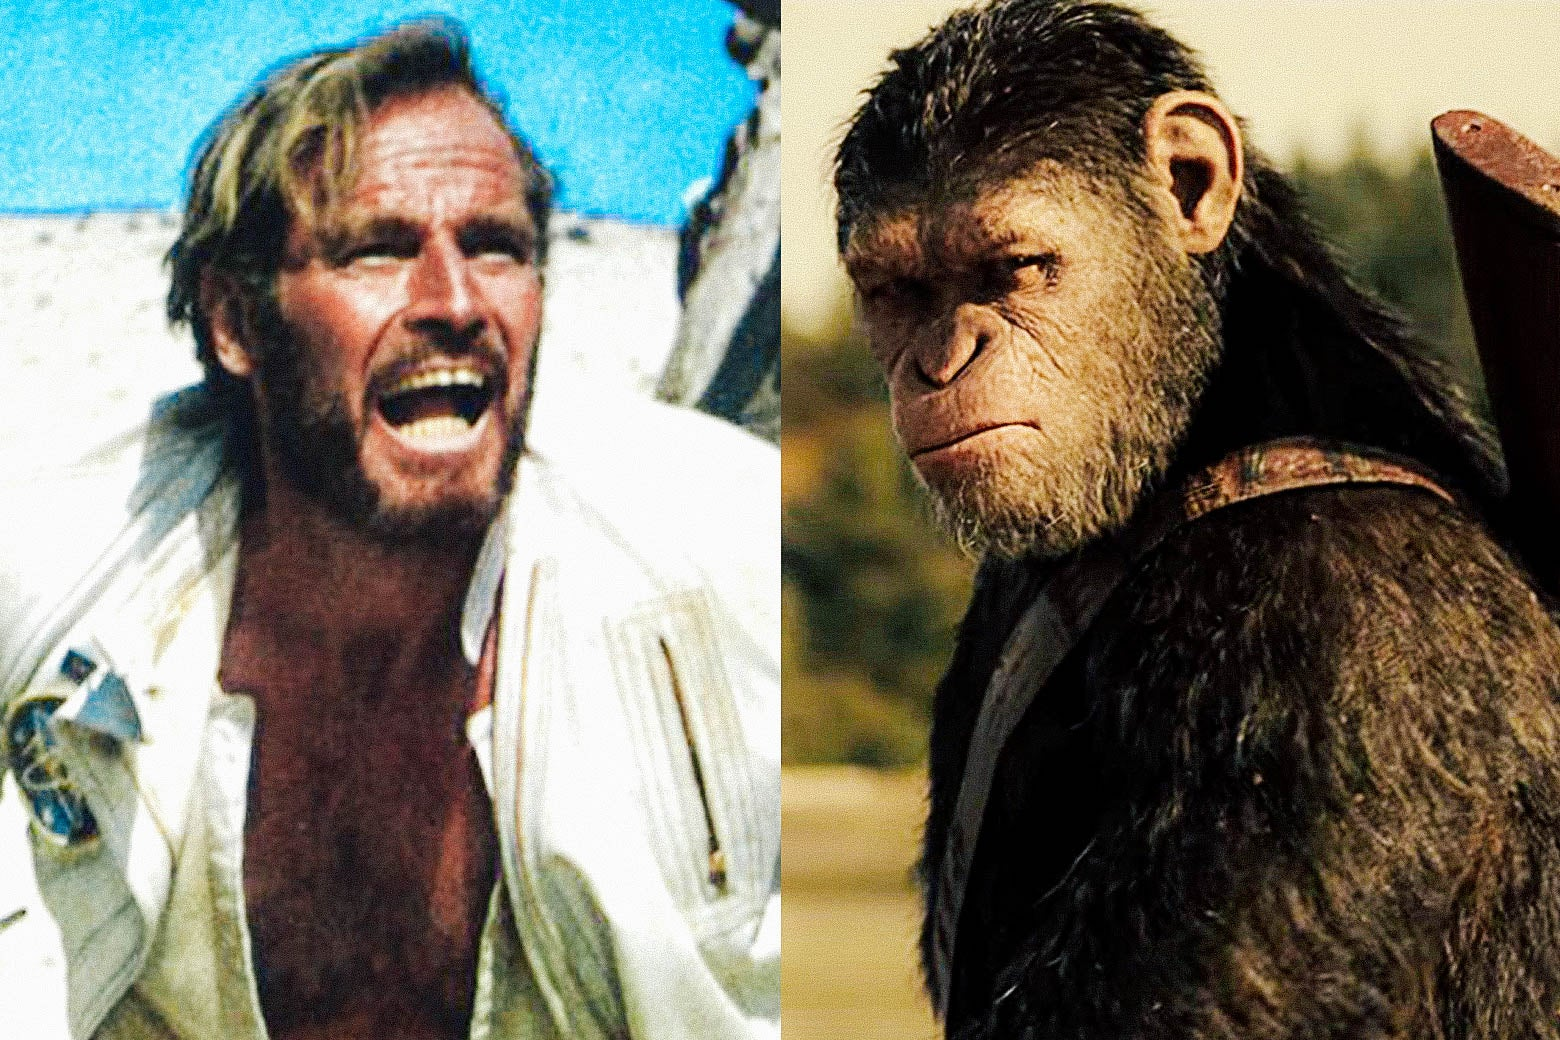 Side by side photos of Charlton Heston in Planet of the Apes and Caesar, the ape, in War for the Planet of the Apes.